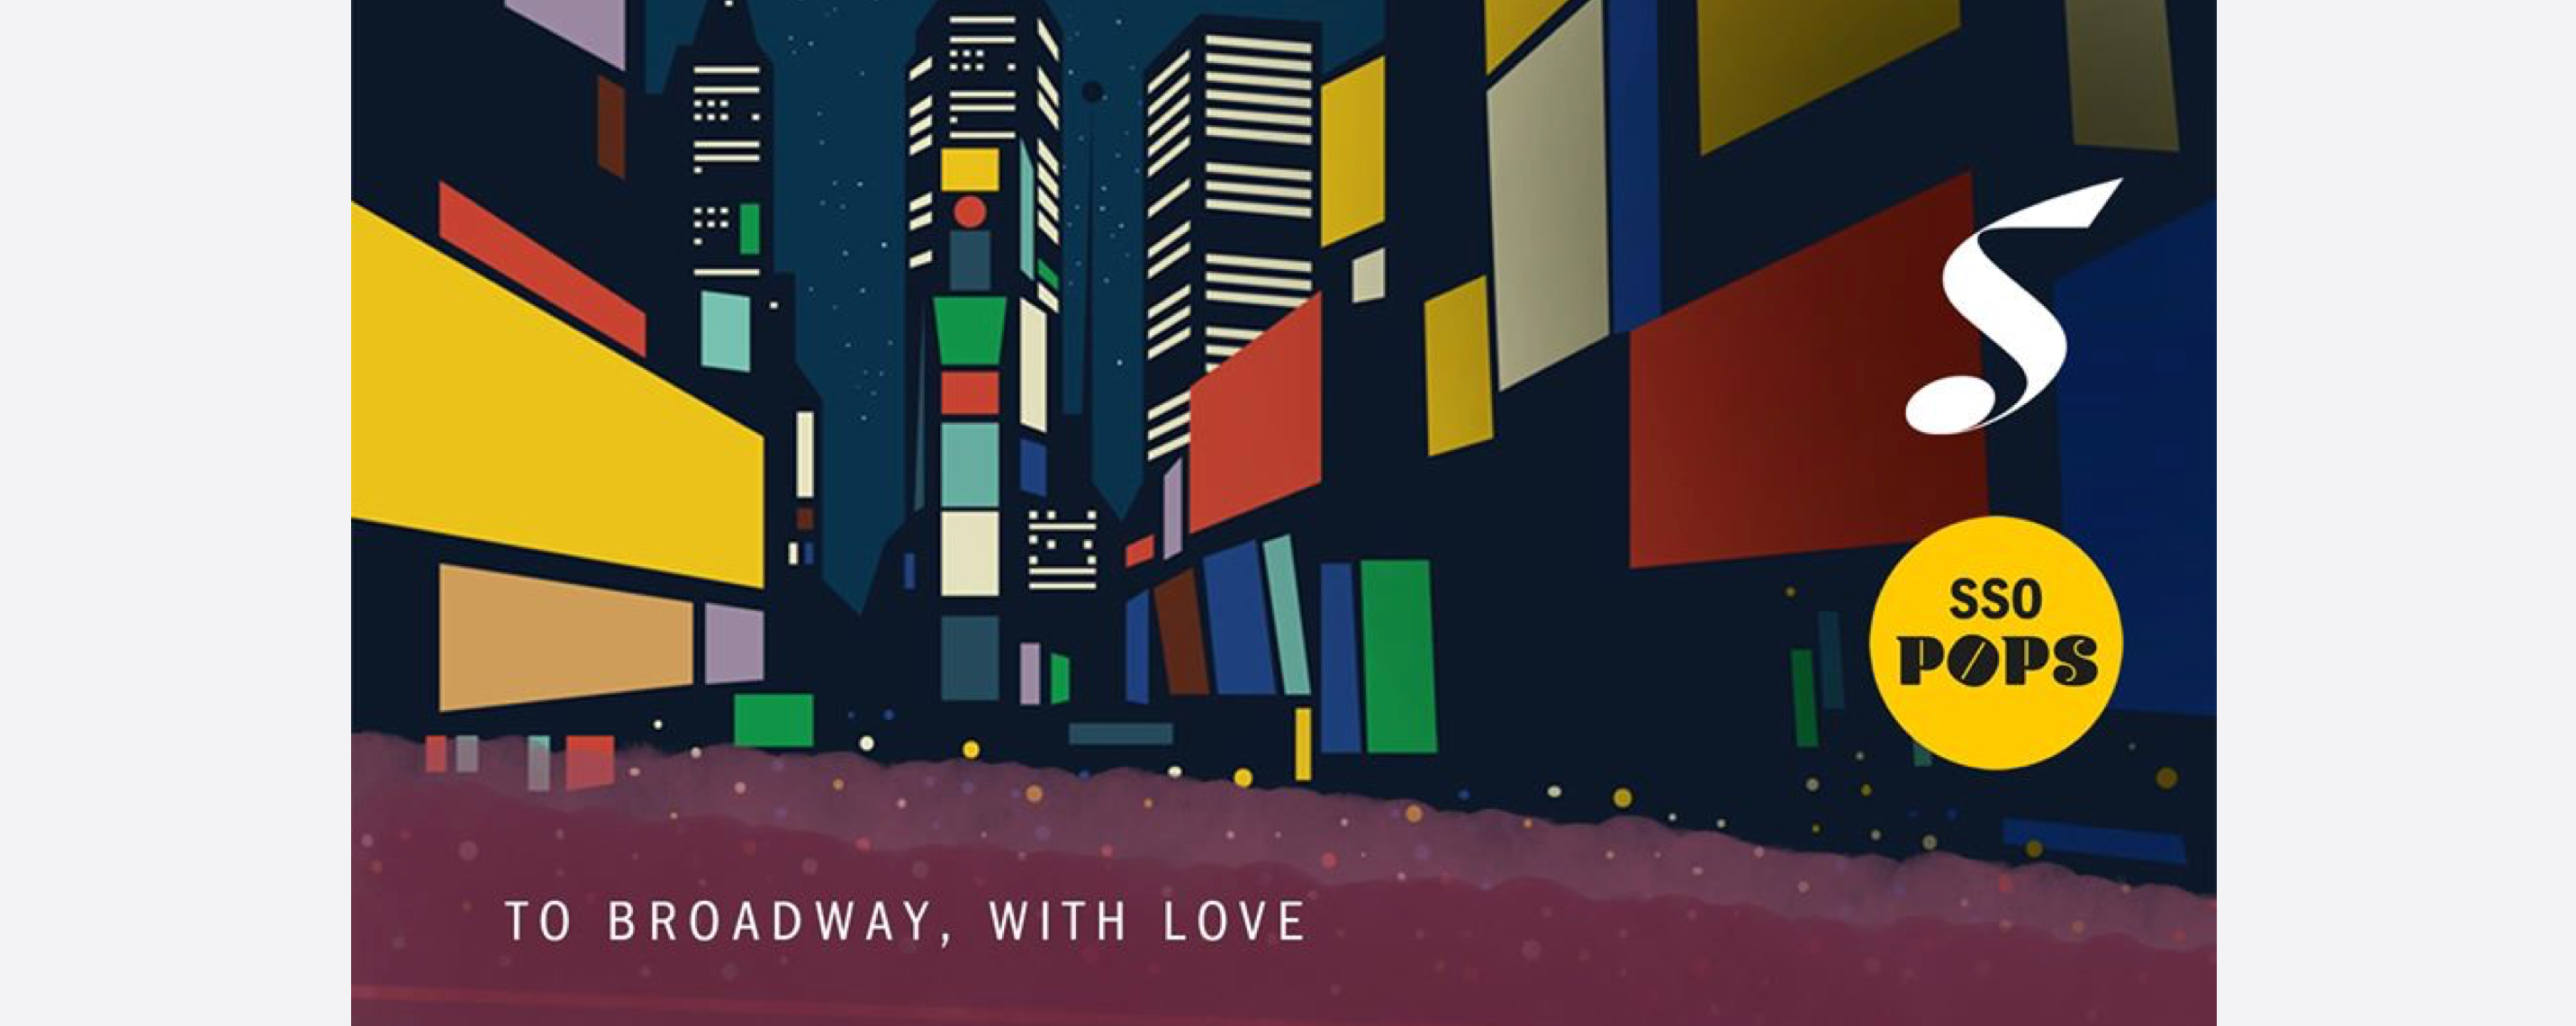 [CANCELLED] SSO Pops: To Broadway, With Love